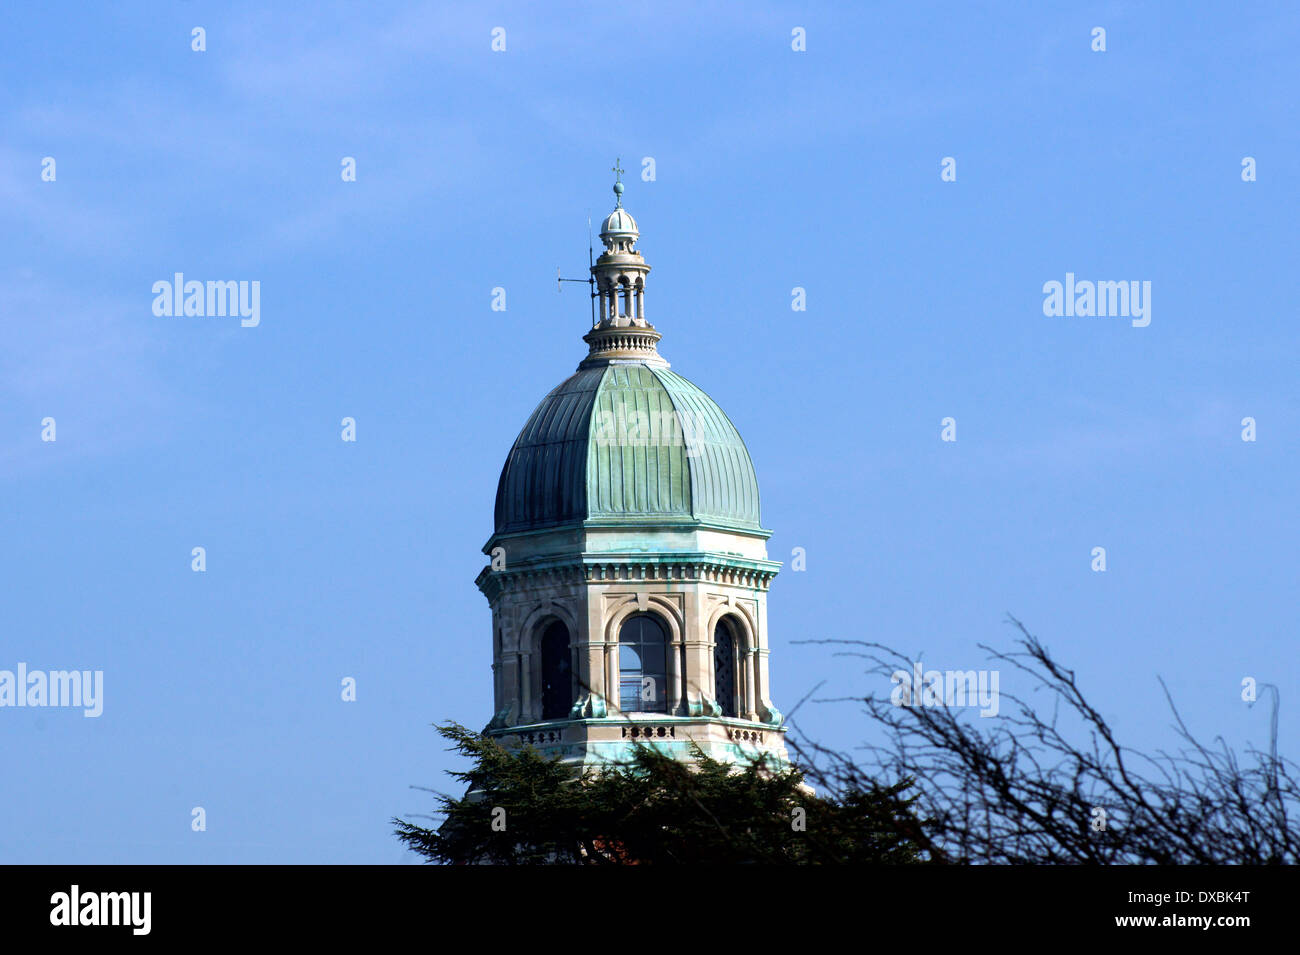 THE CHAPEL BELL TOWER  ROYAL QUEEN VICTORIA COUNTRY PARK, NETLEY,  SOUTHAMPTON, UK. Stock Photo